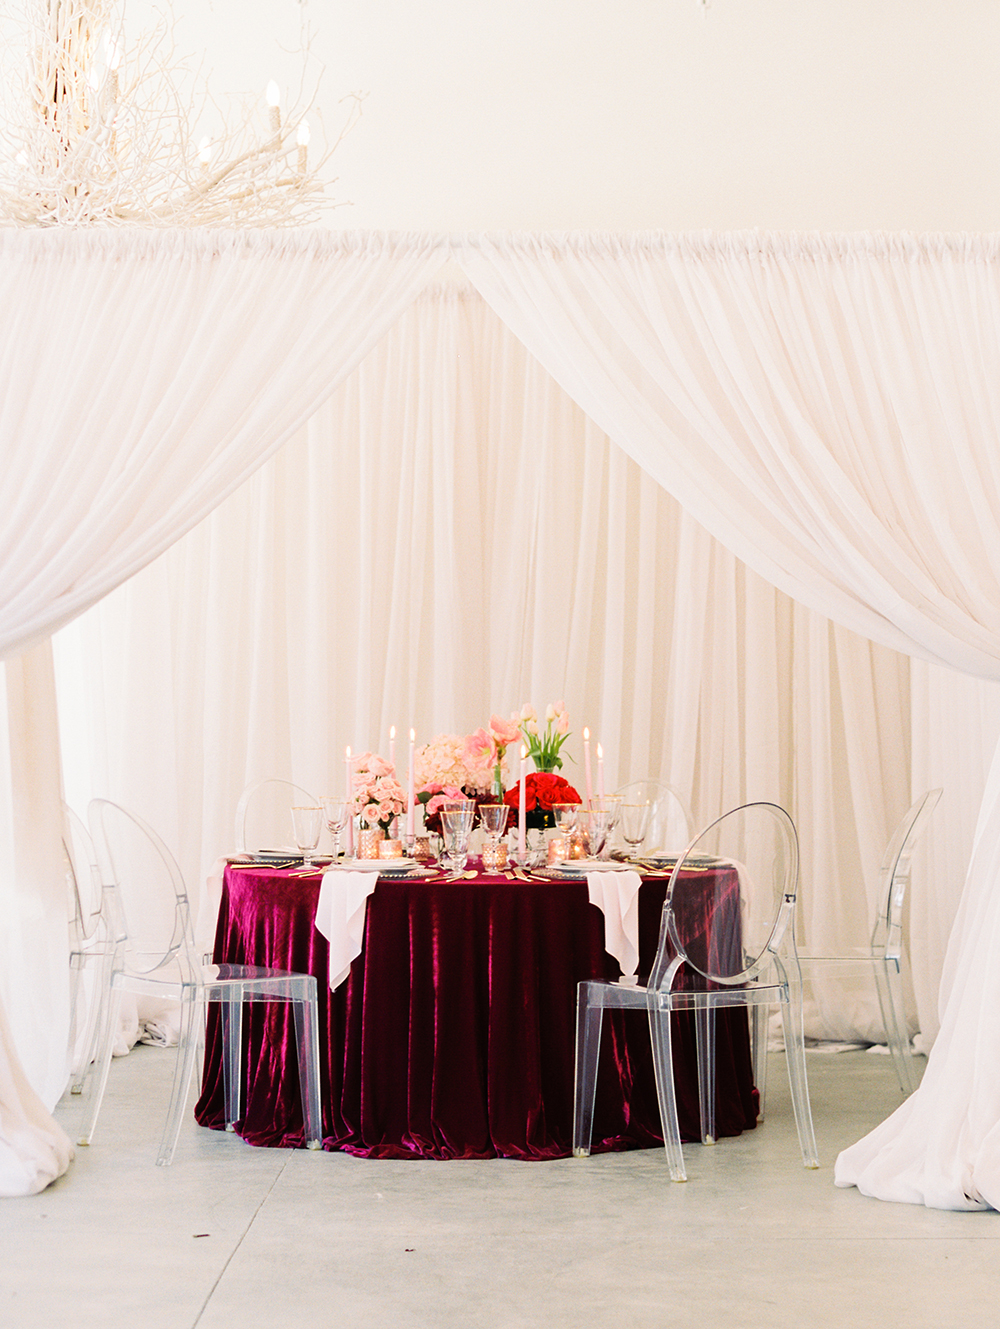 romantic wedding receptions - photo by Erin Stubblefield http://ruffledblog.com/chic-city-valentines-day-wedding-inspiration